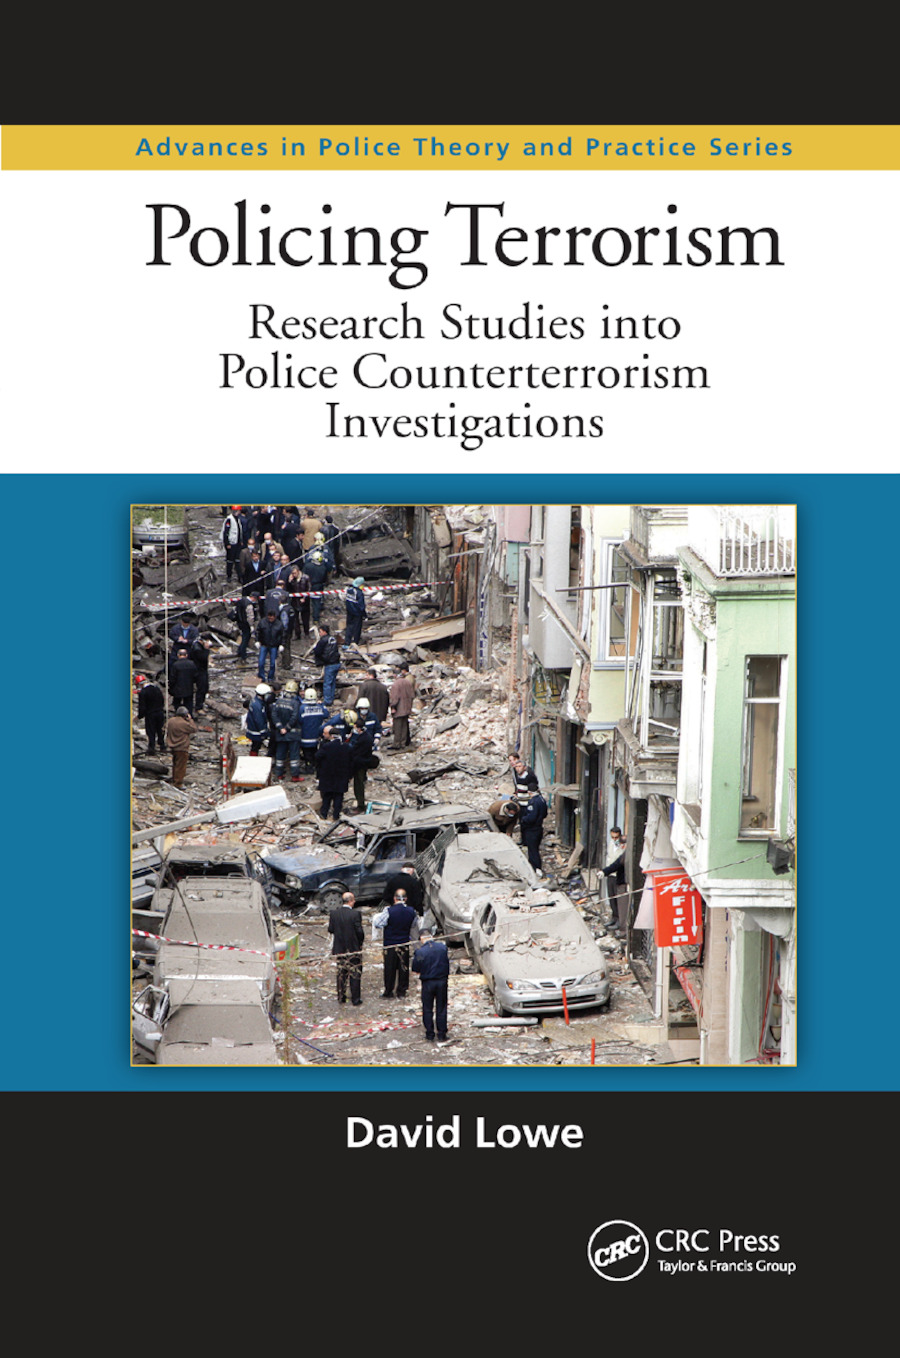 Policing Terrorism: Research Studies into Police Counterterrorism Investigations book cover